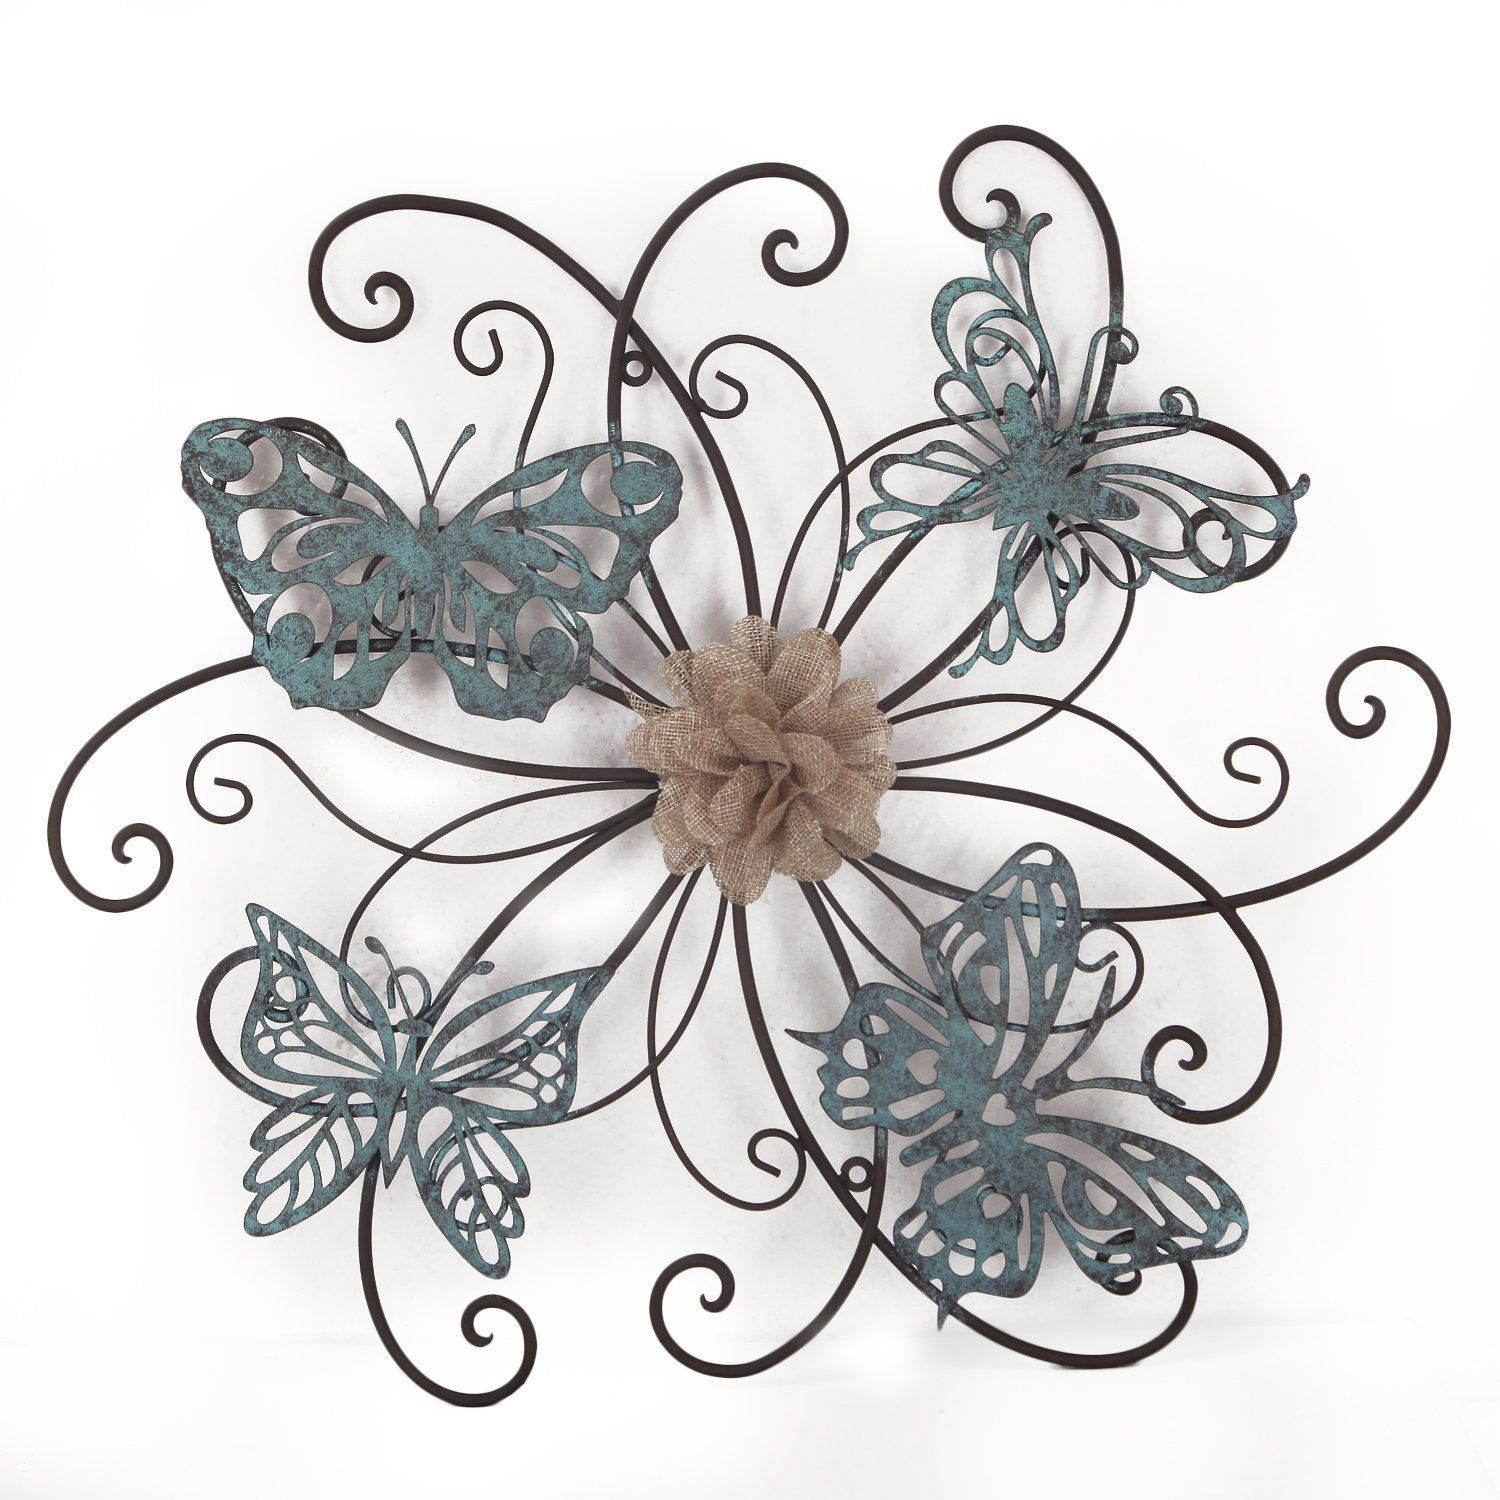 Flower Urban Design Metal Wall Decor Regarding Widely Used Adeco Flower And Butterfly Urban Design Metal (Grey) Wall Decor For (View 7 of 20)